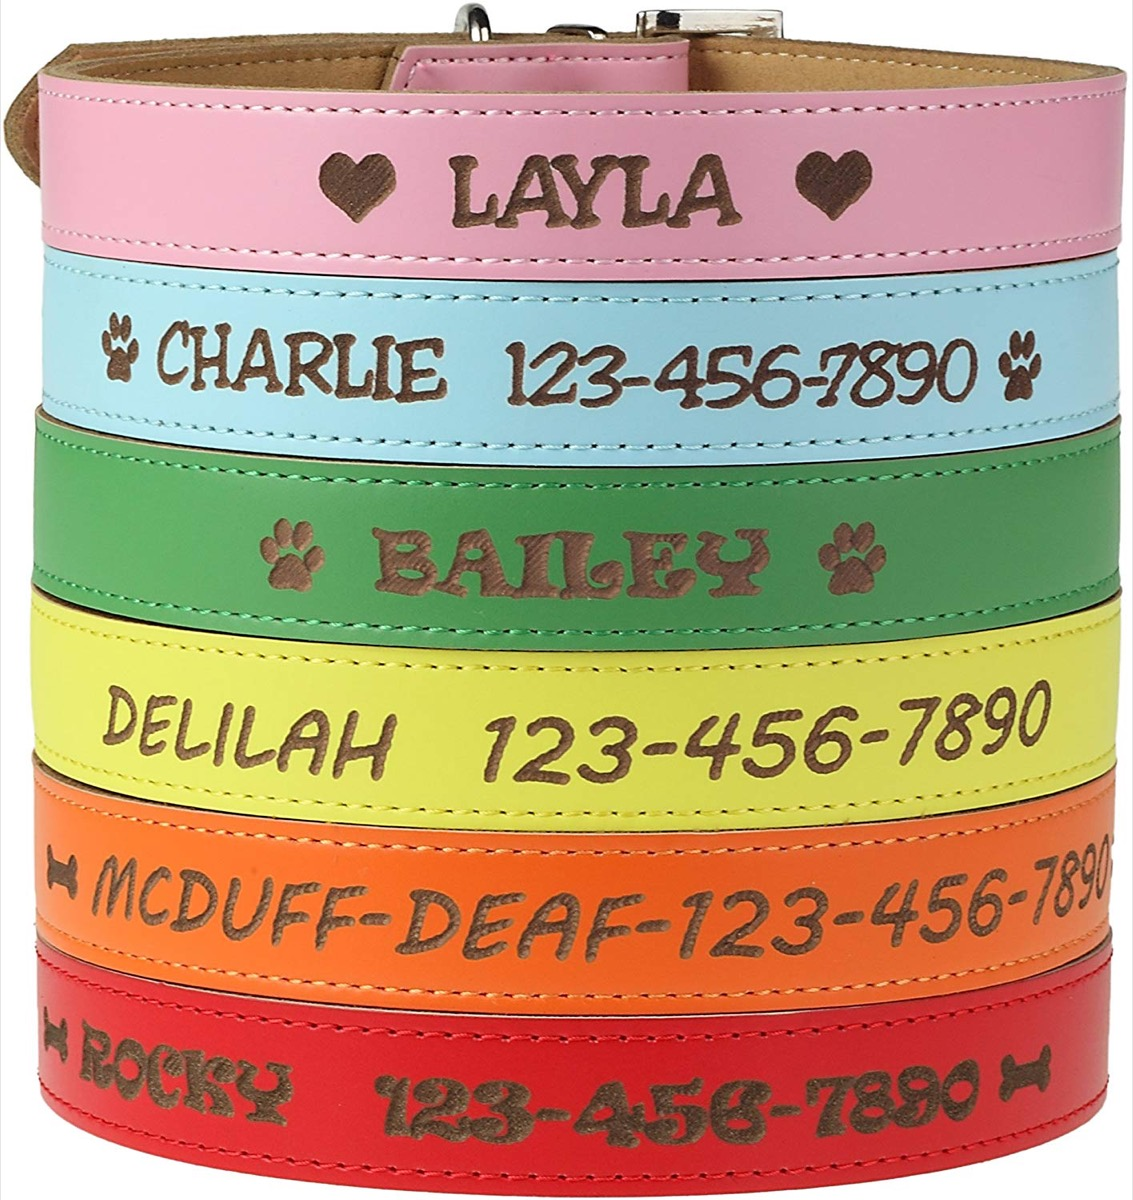 Custom leather dog collars in range of colors